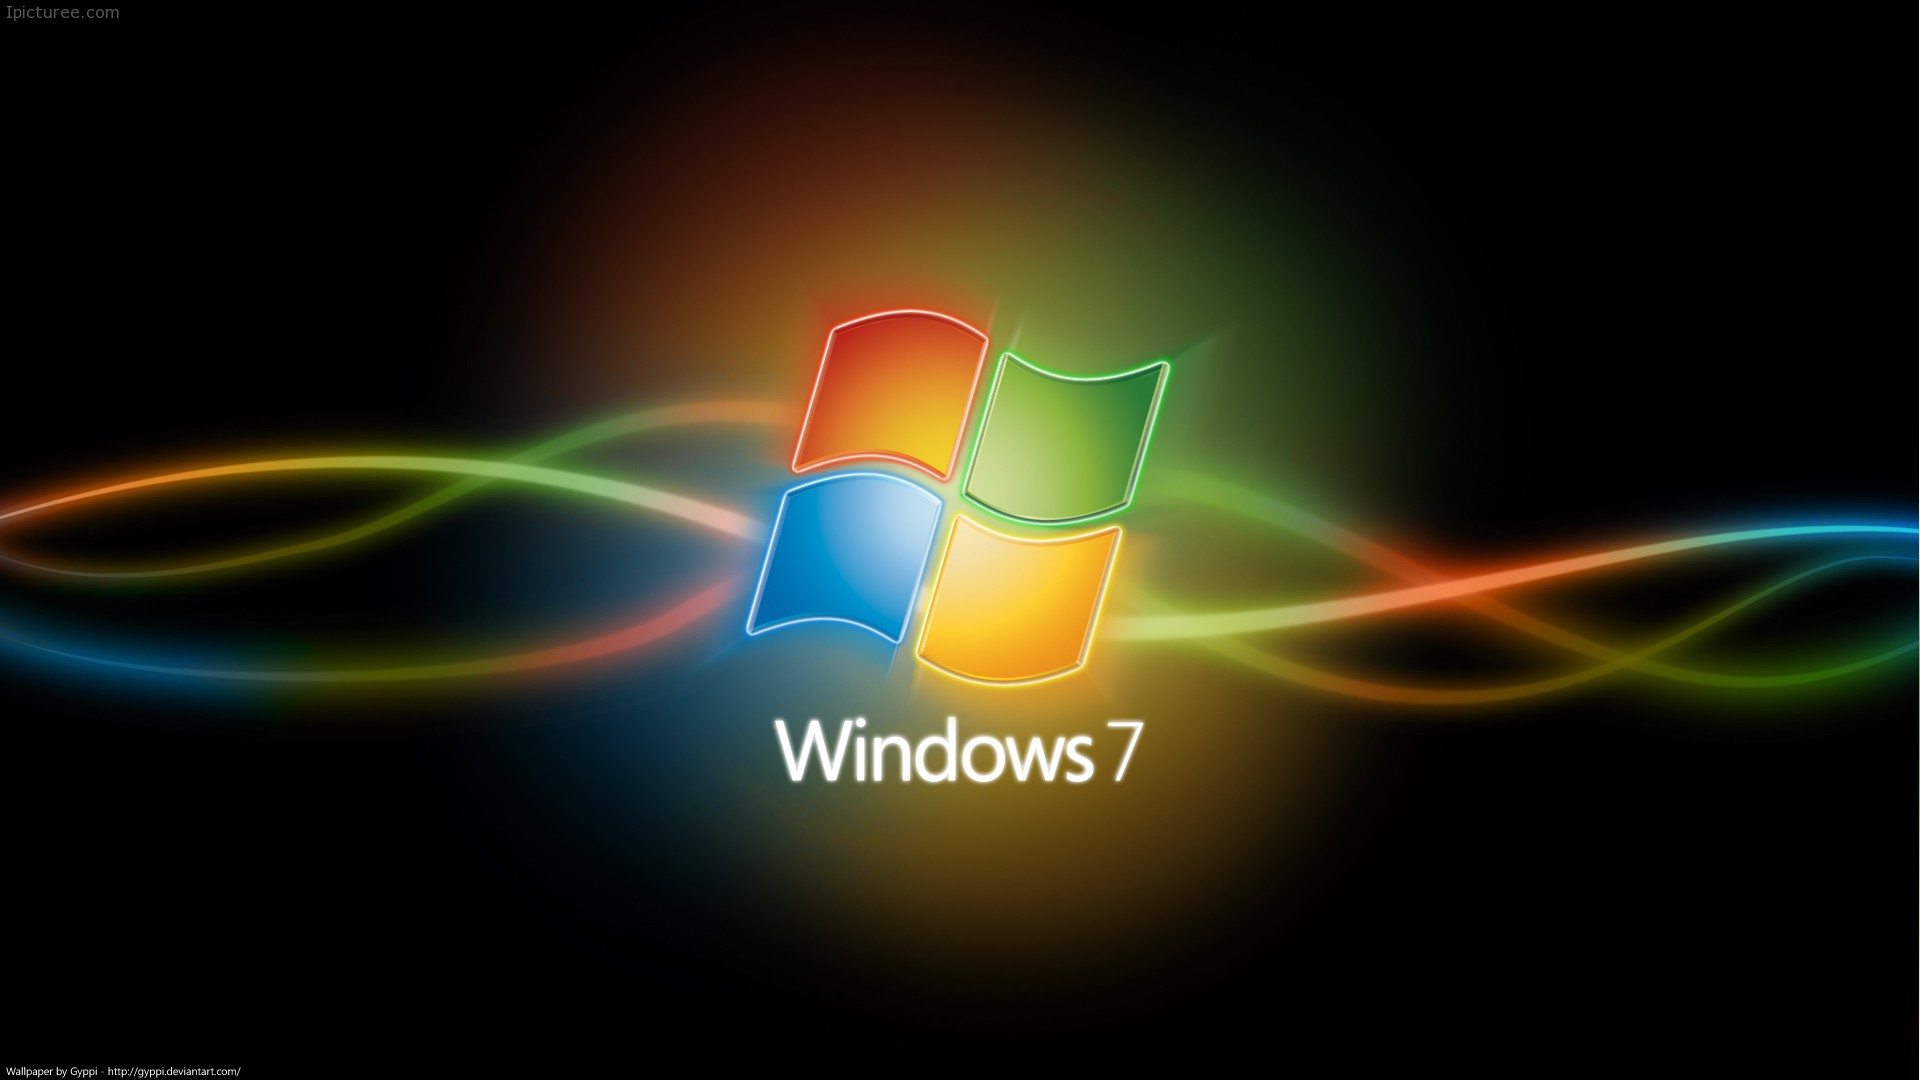 Windows 7 Wallpaper Desktop Win 7 Background Colors